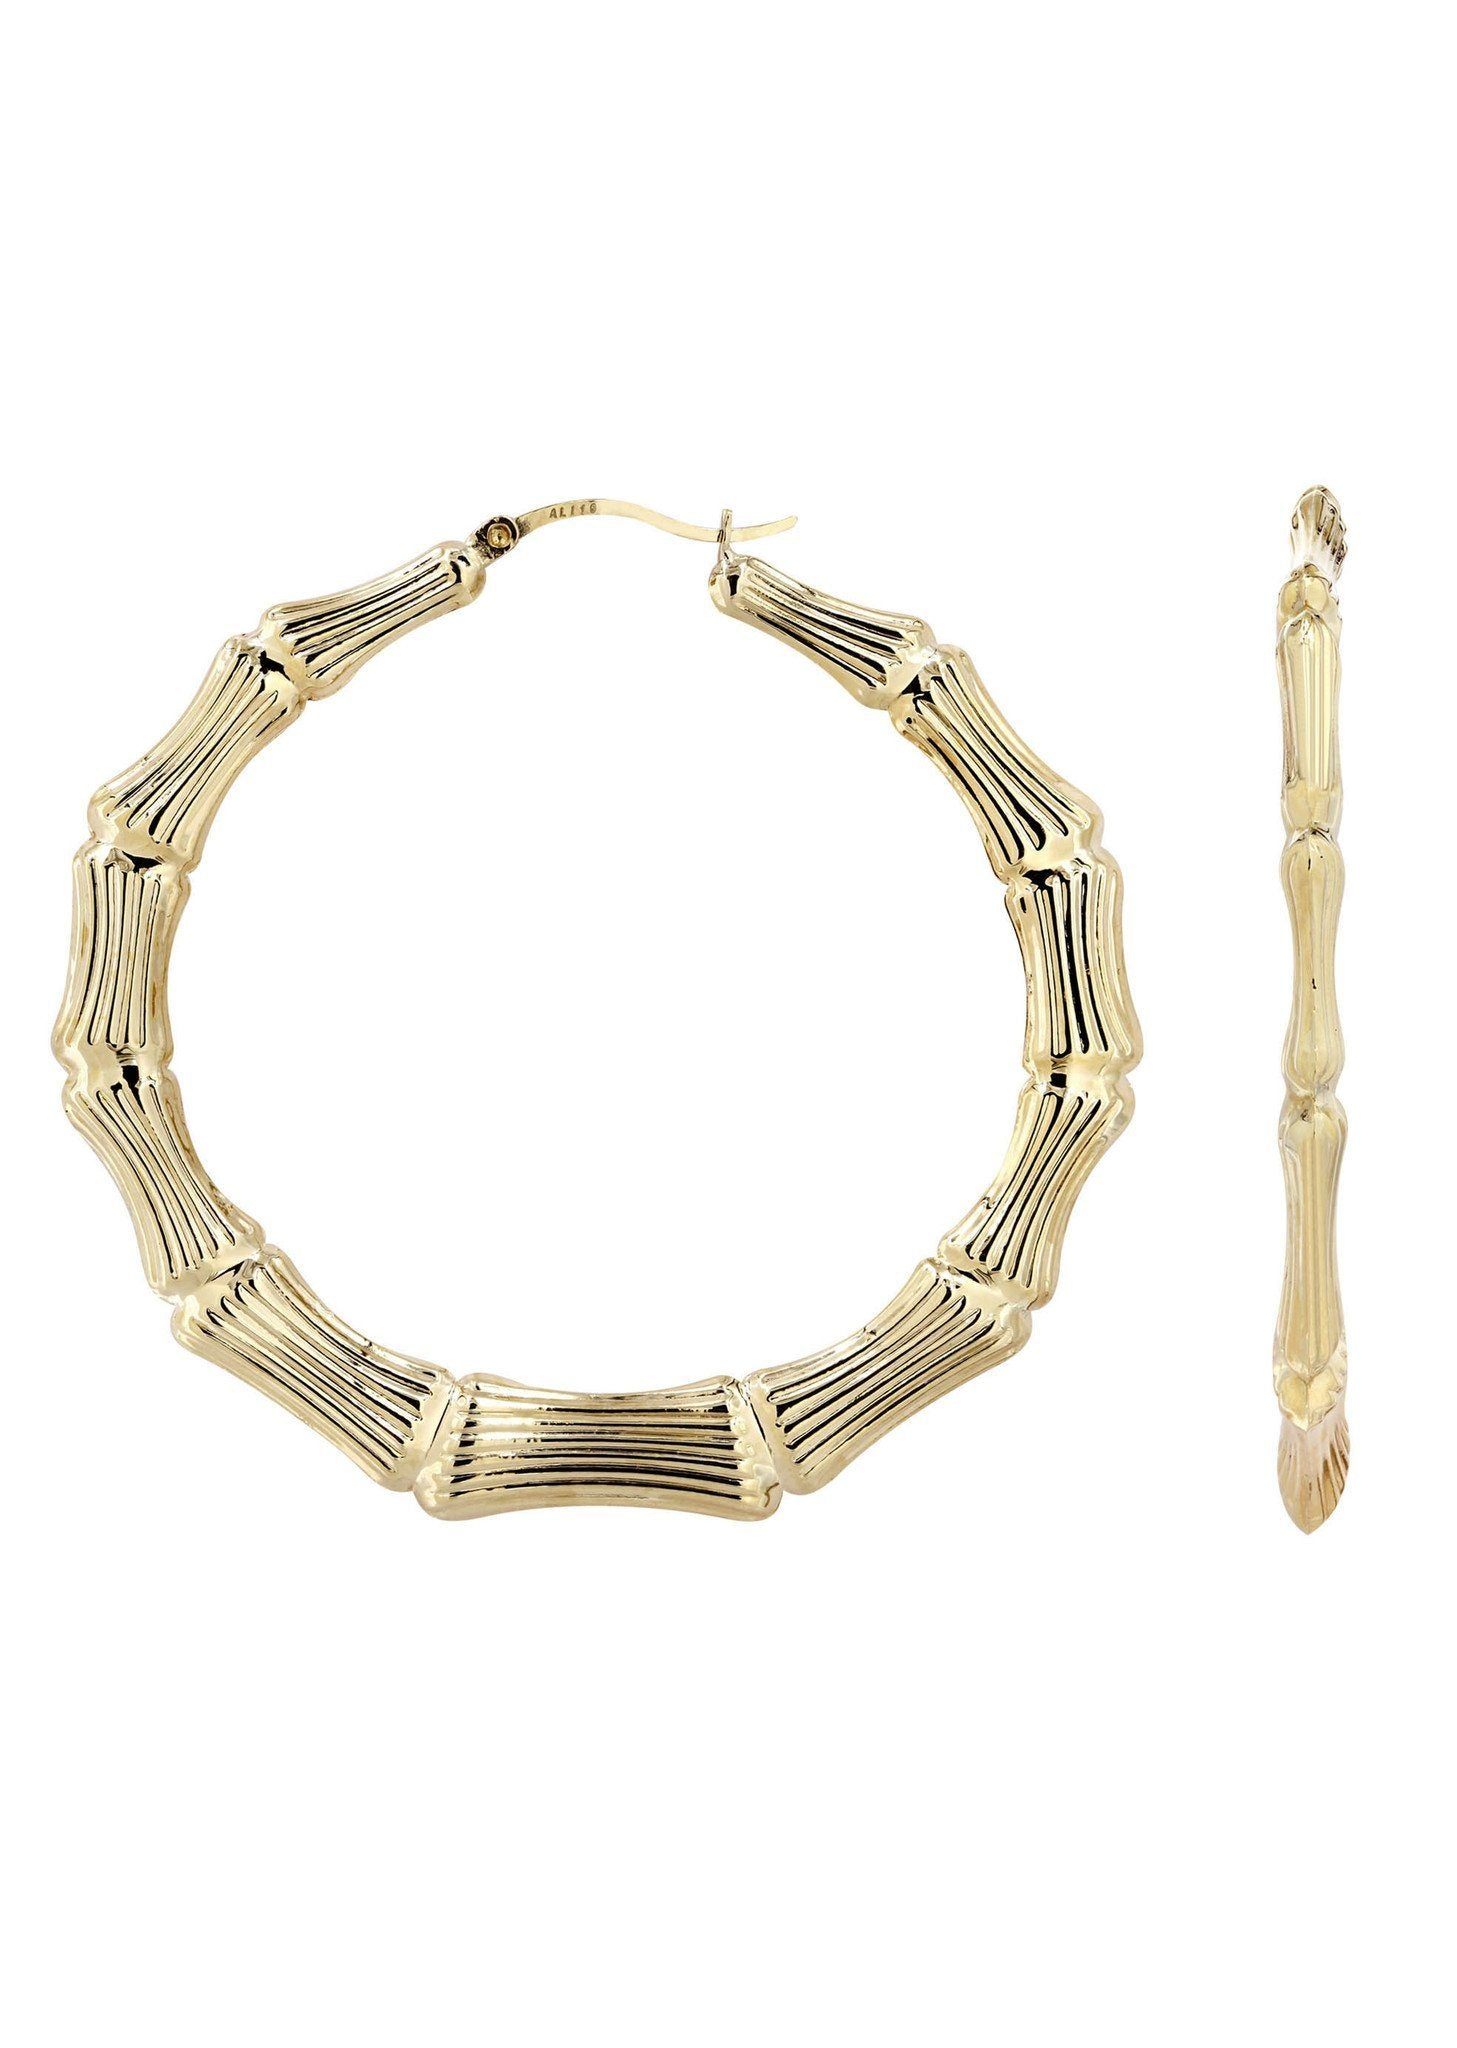 10K Gold Bamboo Hoop Earrings